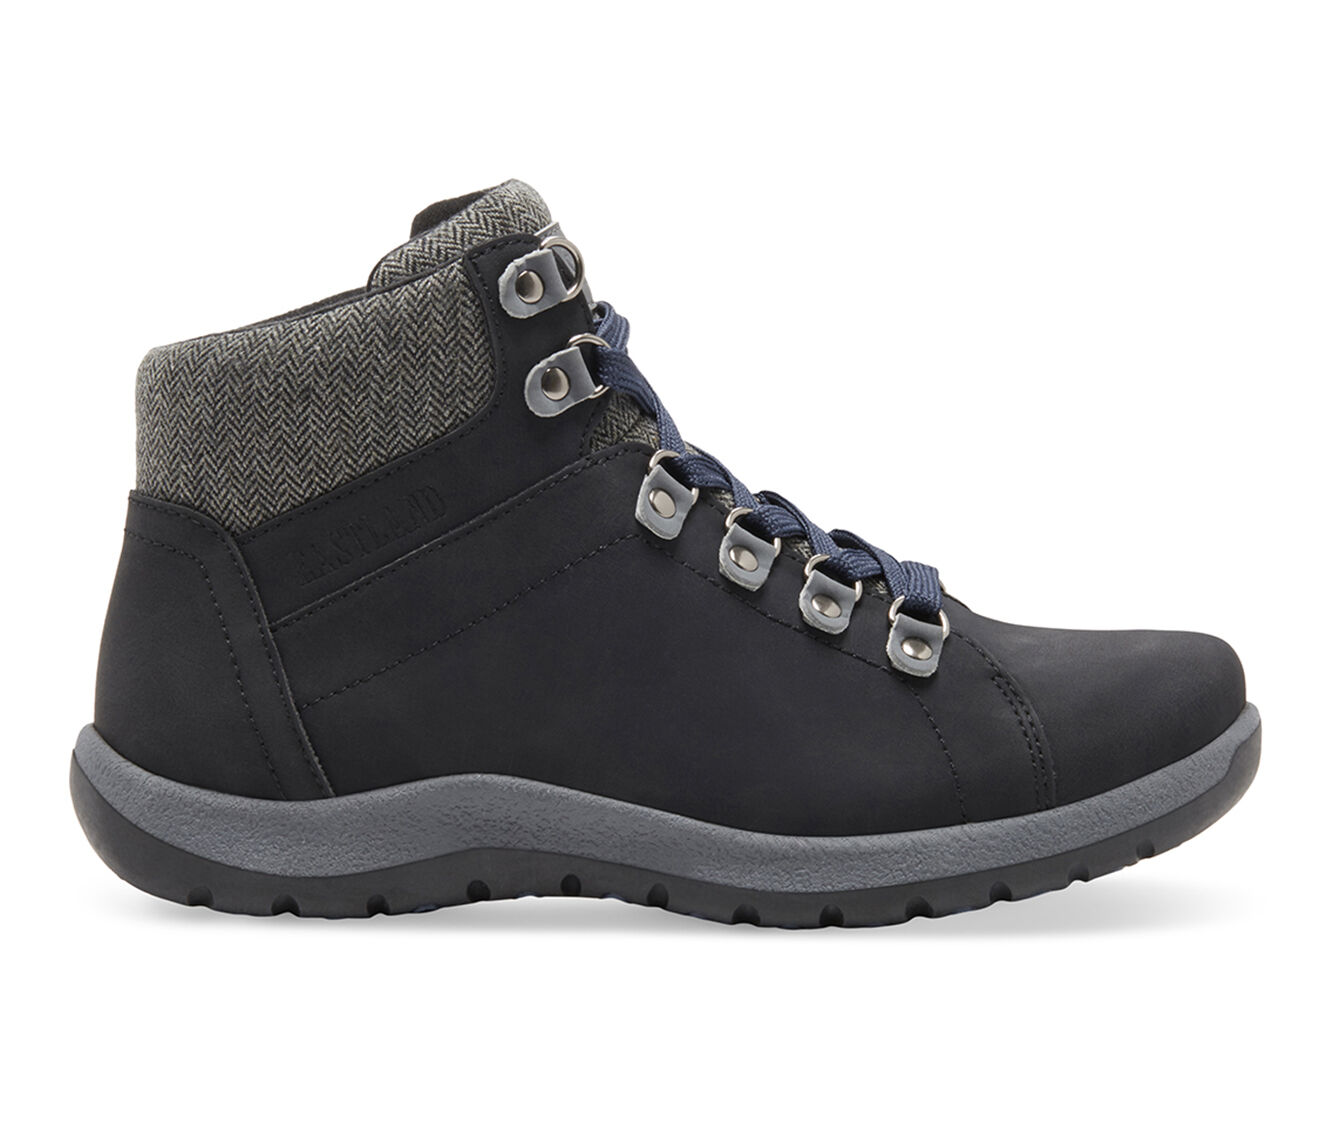 cheapest new Women's Eastland Bethanie Hiking Boots Black